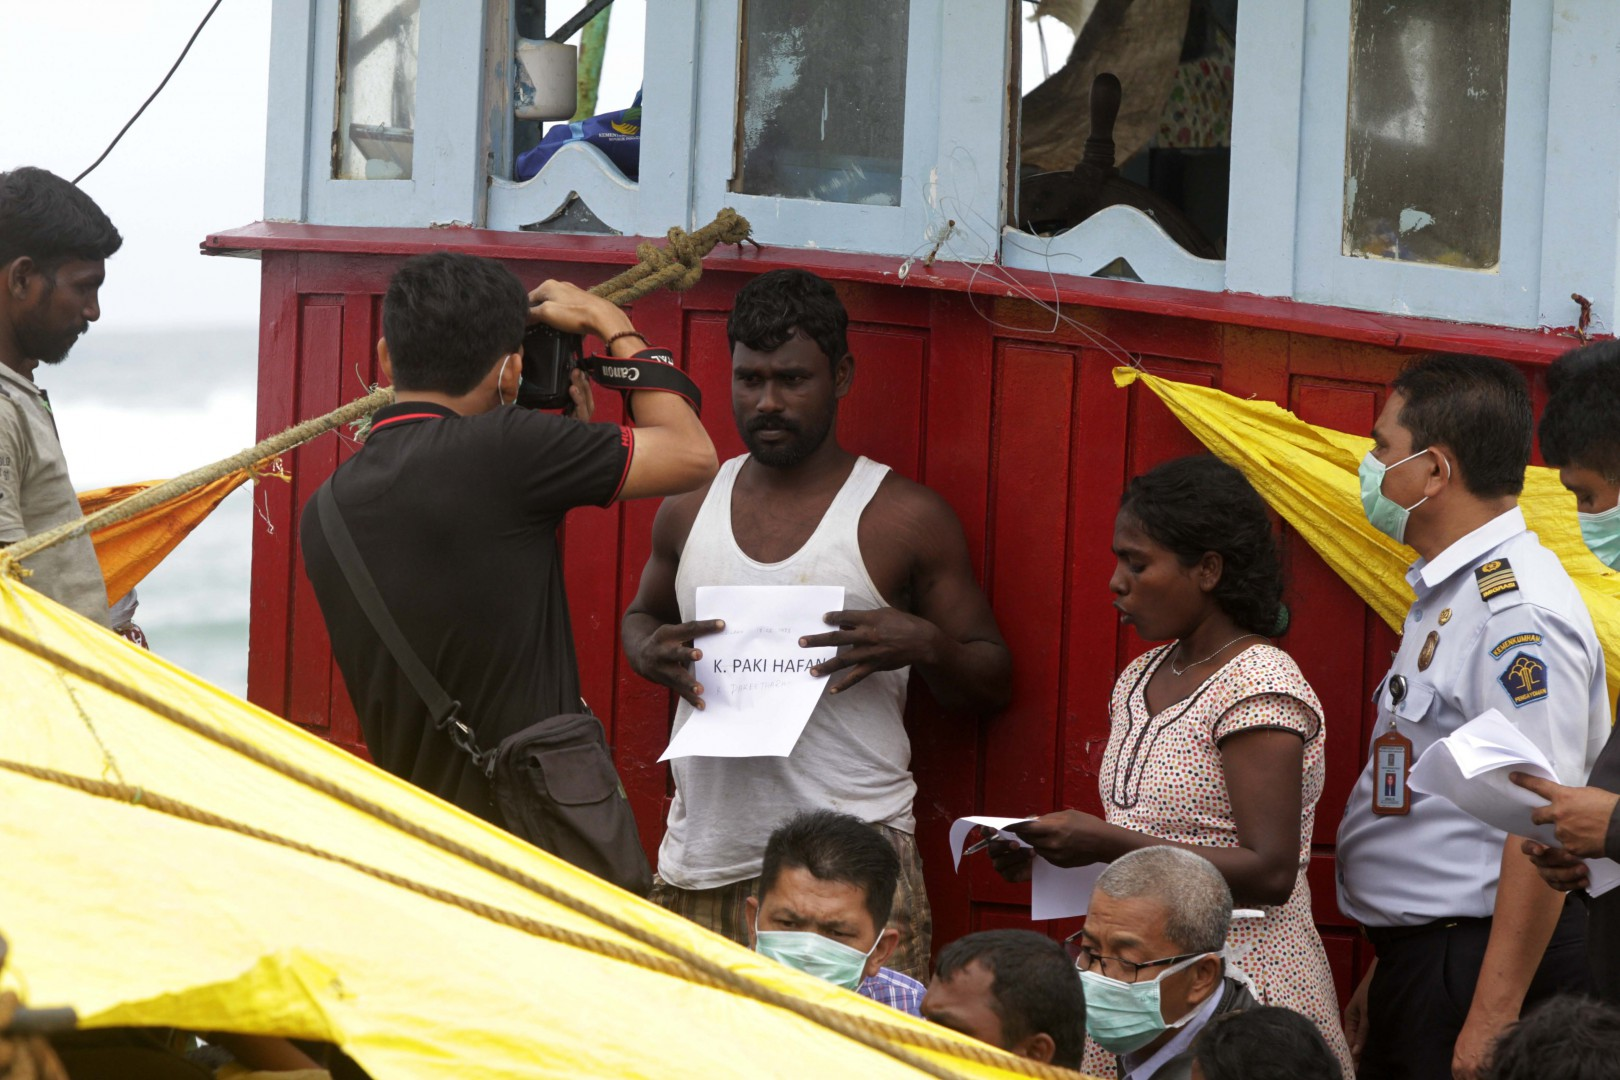 (160617) -- ACEH, June 17, 2016 (Xinhua) -- An Indonesian immigration officer takes a photo of a Sri Lankan for identification on a migrant boat stranded at Lhoknga Beach, Aceh, Indonesia, June 16, 2016. About 44 migrants onboard from Sri Lanka drifted into Aceh waters after an engine failure. According to the Indonesian Immigration Office, the migrants were heading to Australia when the engine problem occurred. (Xinhua/Junaidi) ****Authorized by ytfs****